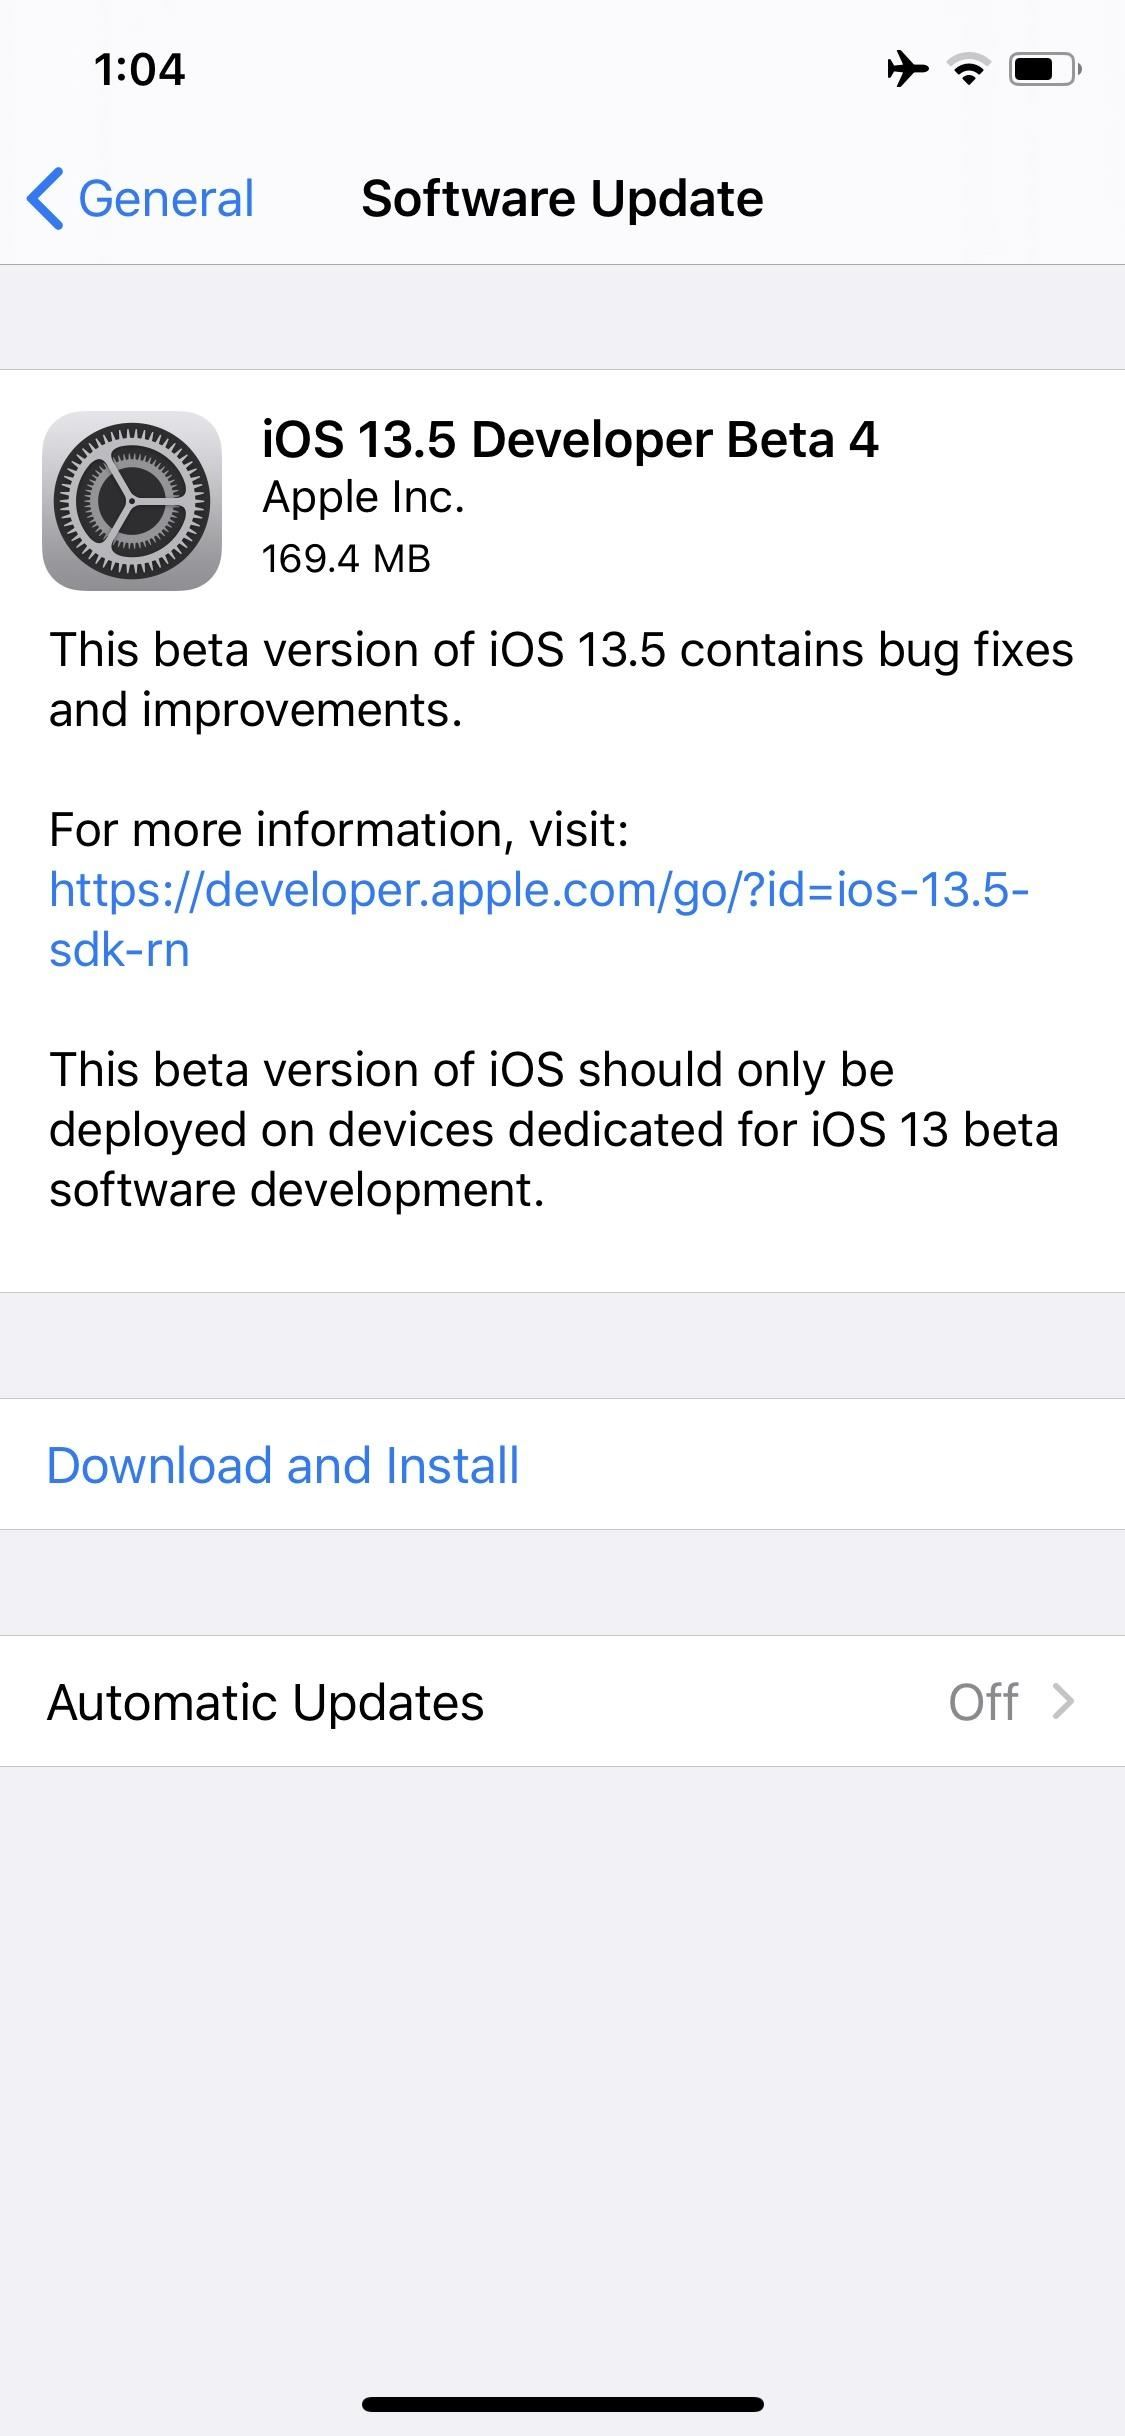 Apple's iOS 13.5 Developer Beta 4 Gives Us Updated COVID-19 Exposure Logging Settings